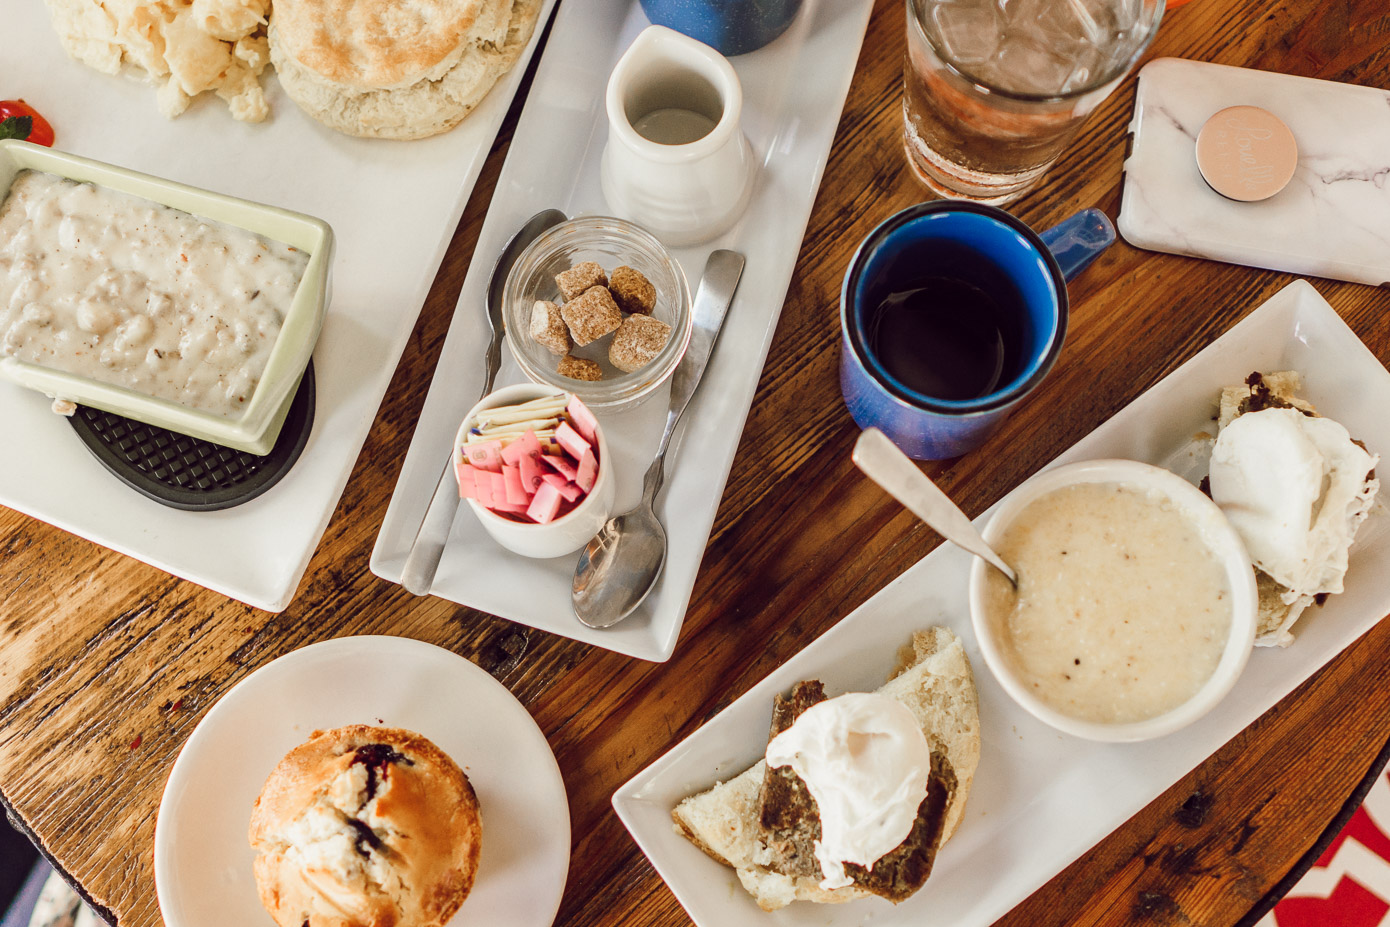 Breakfast at The New Public House | Where to Stay in Blowing Rock NC: The New Public House featured by popular North Carolina travel blogger Laura Leigh of Louella Reese